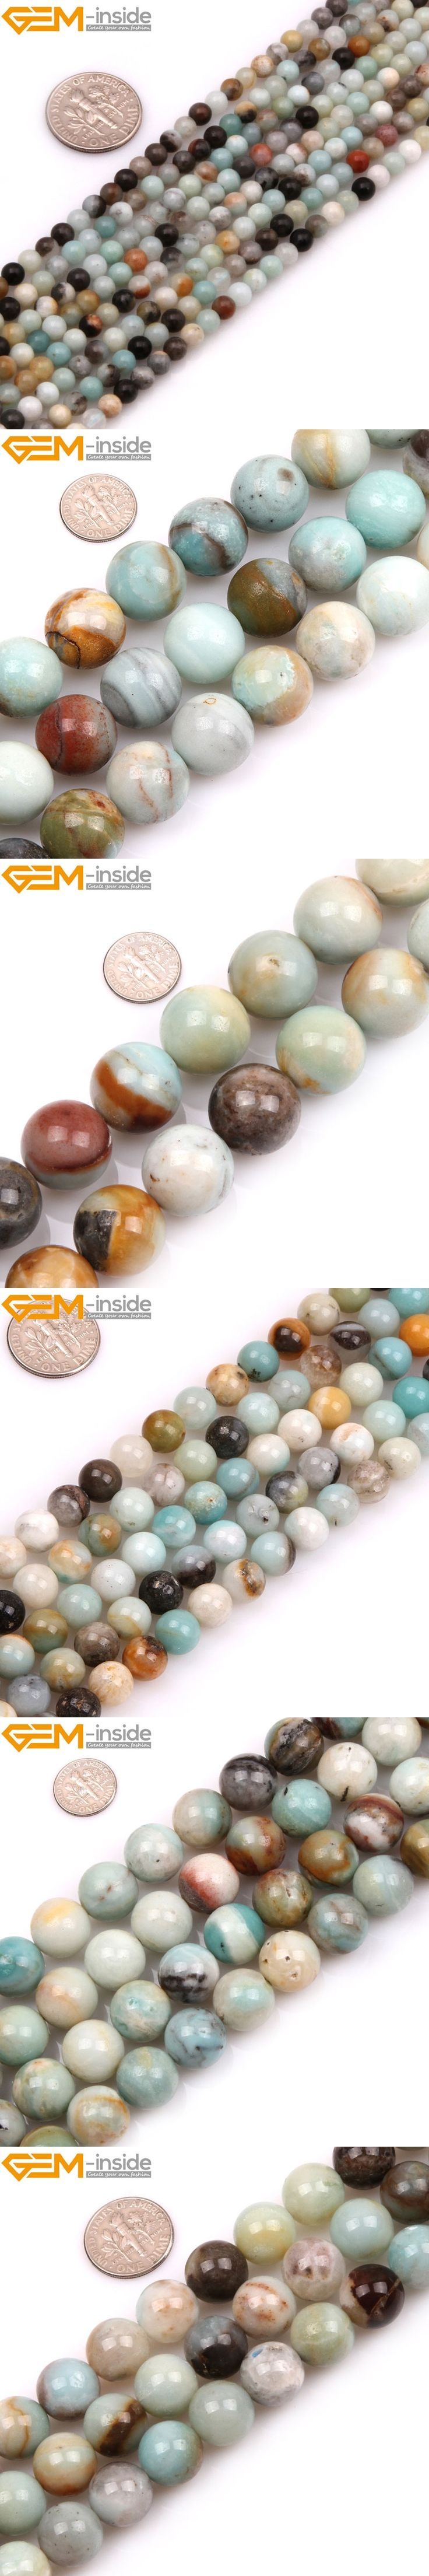 Natural Round Amazonite Stone Beads For Jewelry Making 4-20mm 15inches DIY Jewellery Necklace FreeShipping Wholesale Gem-inside